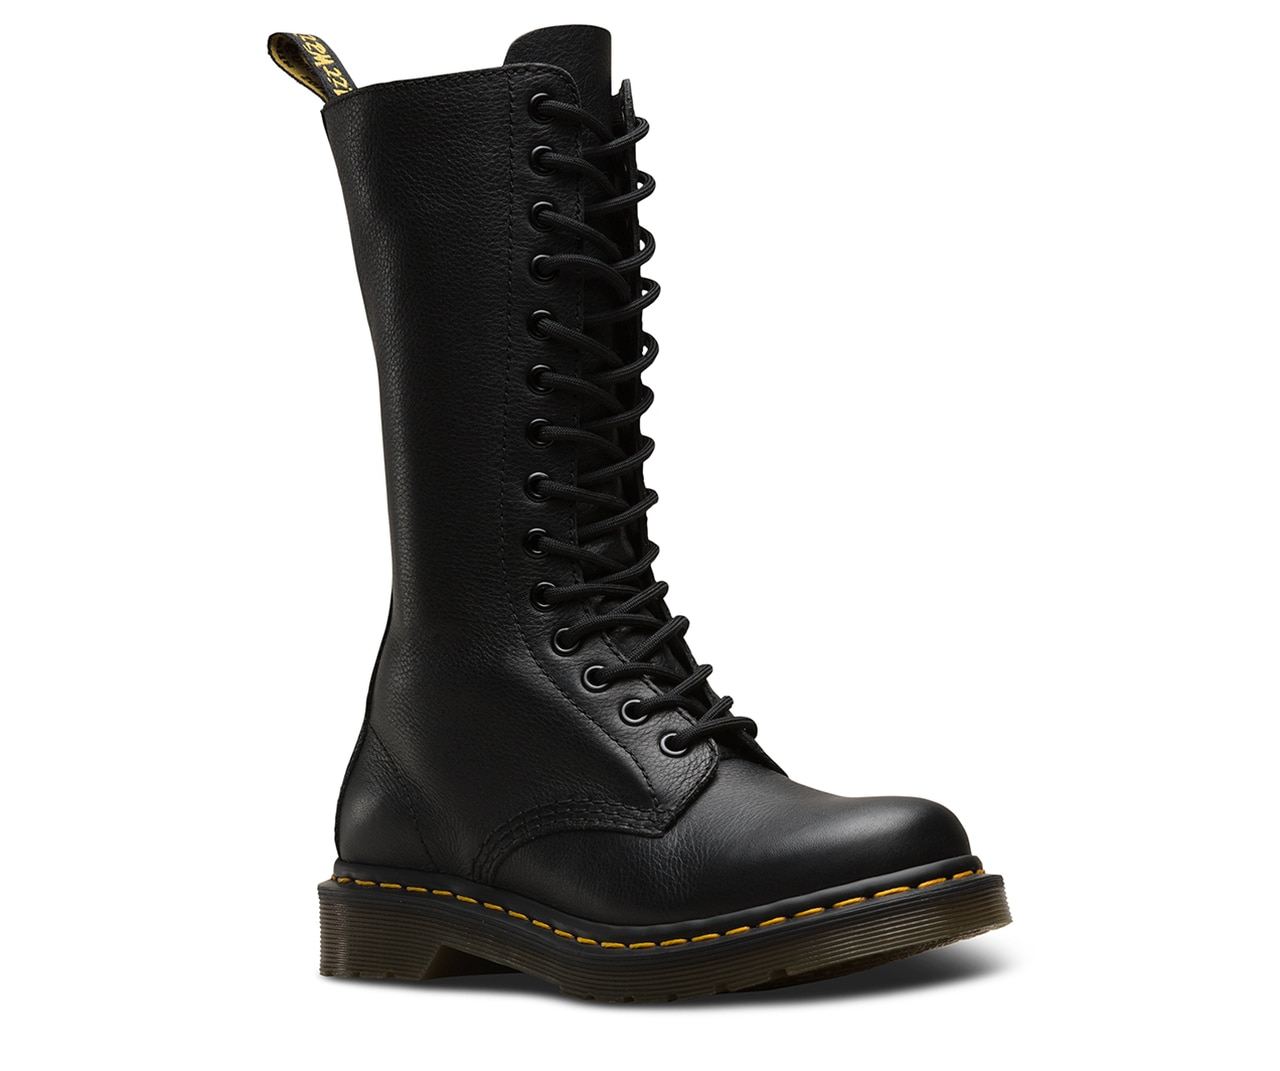 '1B99' Leather Boot by Dr. Martens, available on nordstrom.com Kaia Gerber Shoes Exact Product